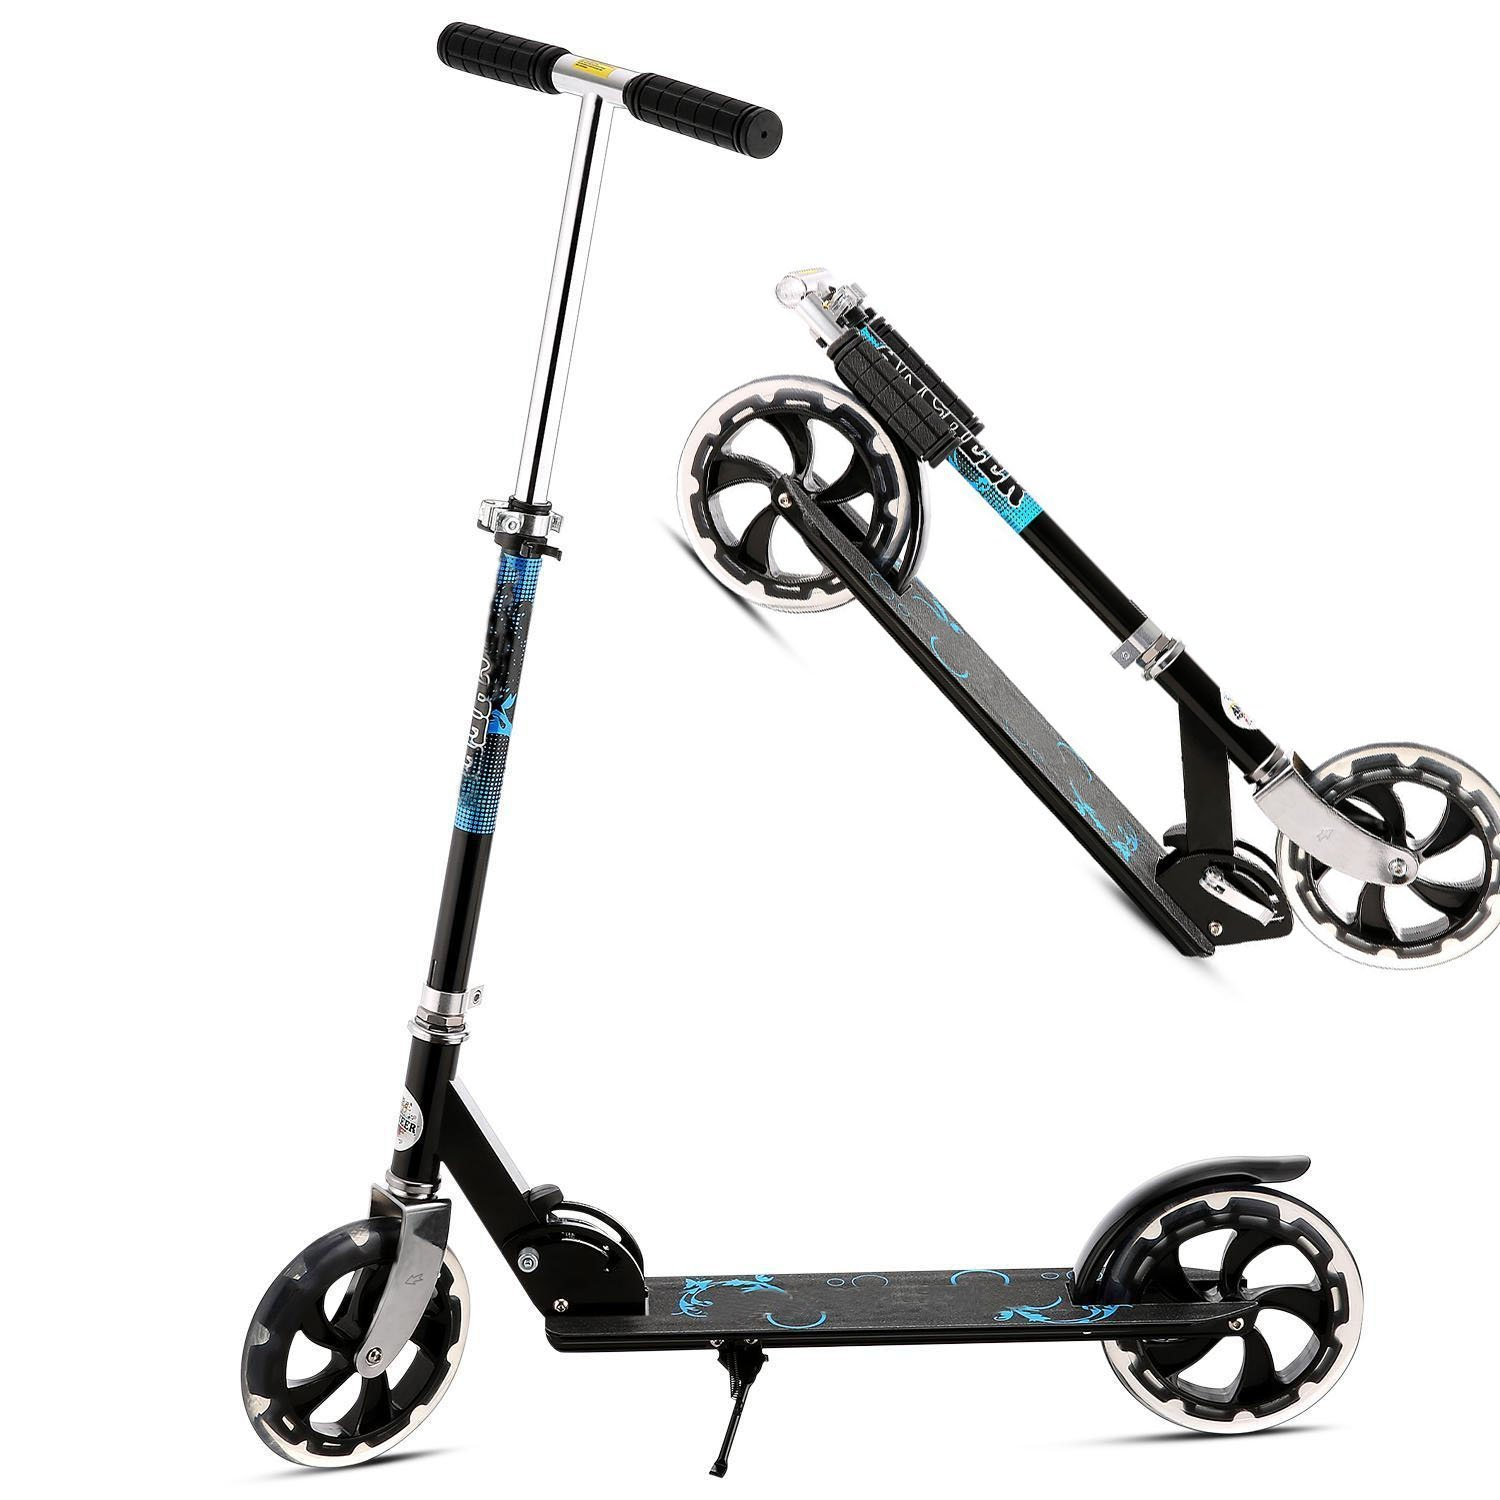 2 Wheel Lightweight Adult Kick Scooter Adjustable Height 3 Levels Kick Scooter for Teenager Adult US STOCK